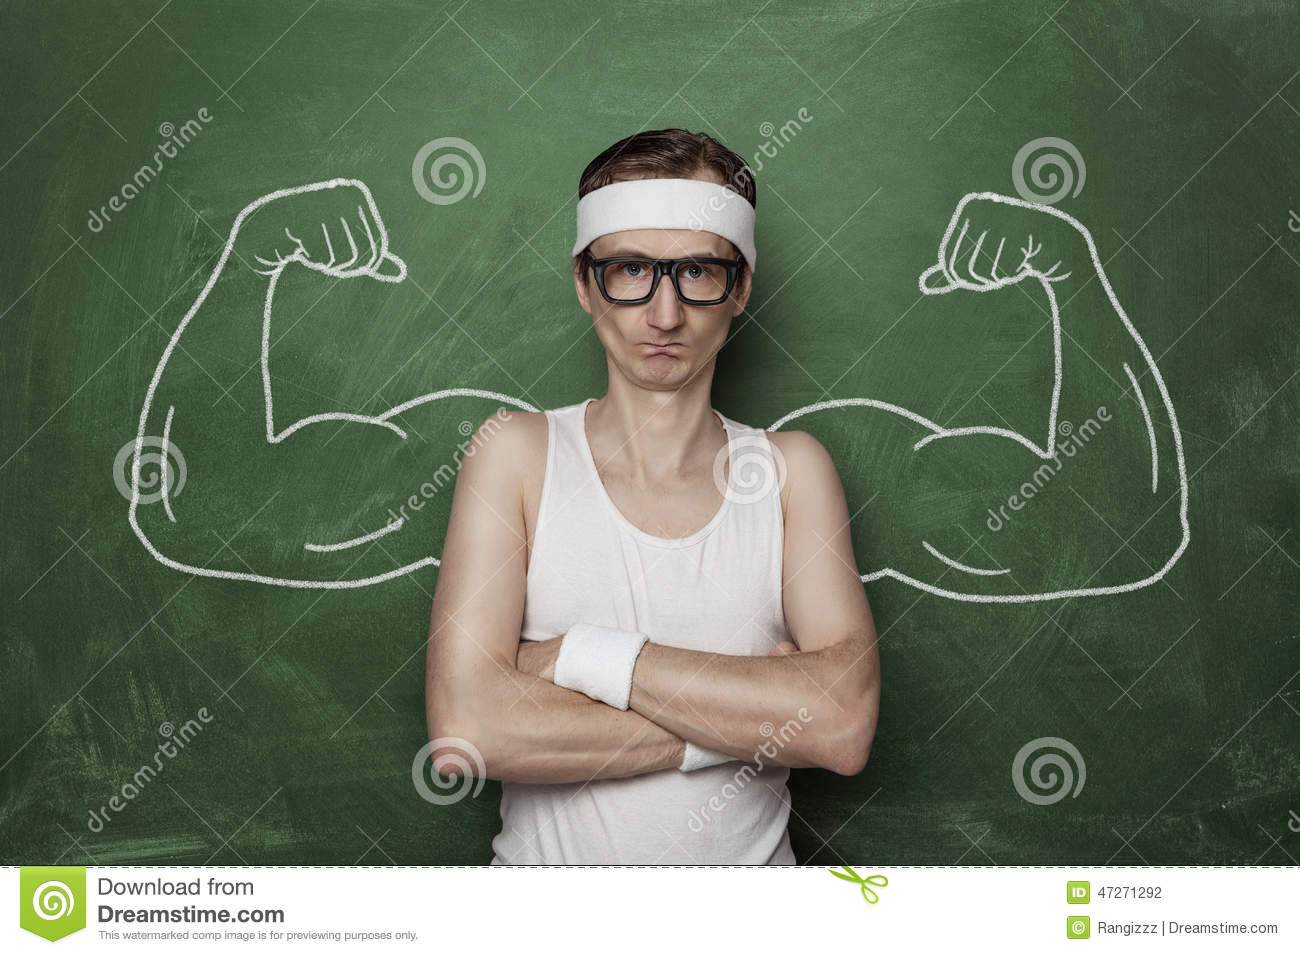 Stock Photo Funny Sport Nerd Fake Muscle Drawn Chalkboard Image4727129...